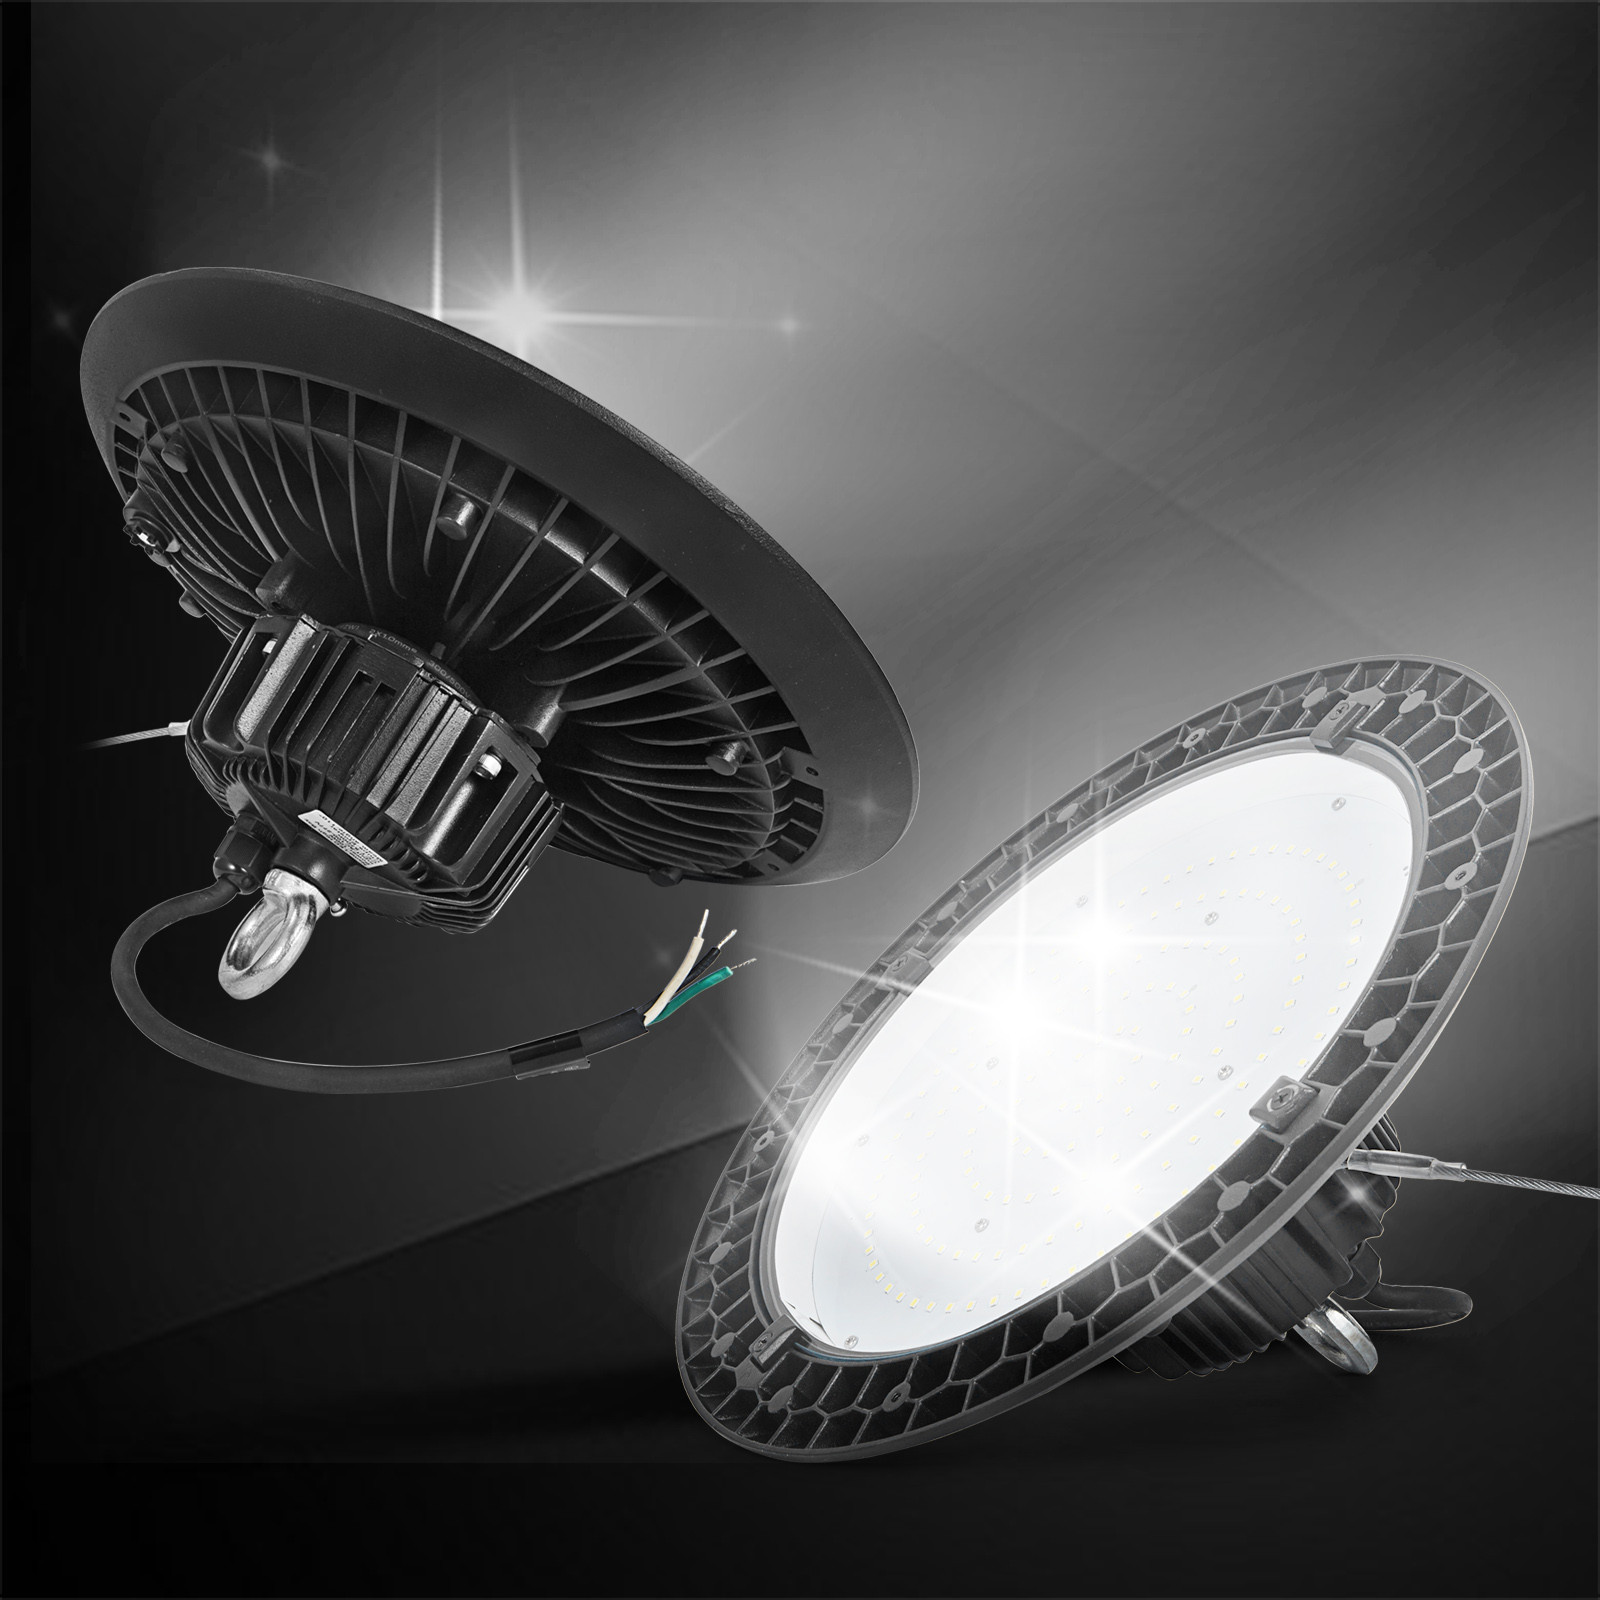 4 Bulb Lamp T8 Led High Bay Warehouse Shop Garage: UFO LED High Bay Light Fixture Warehouse Shop Lights